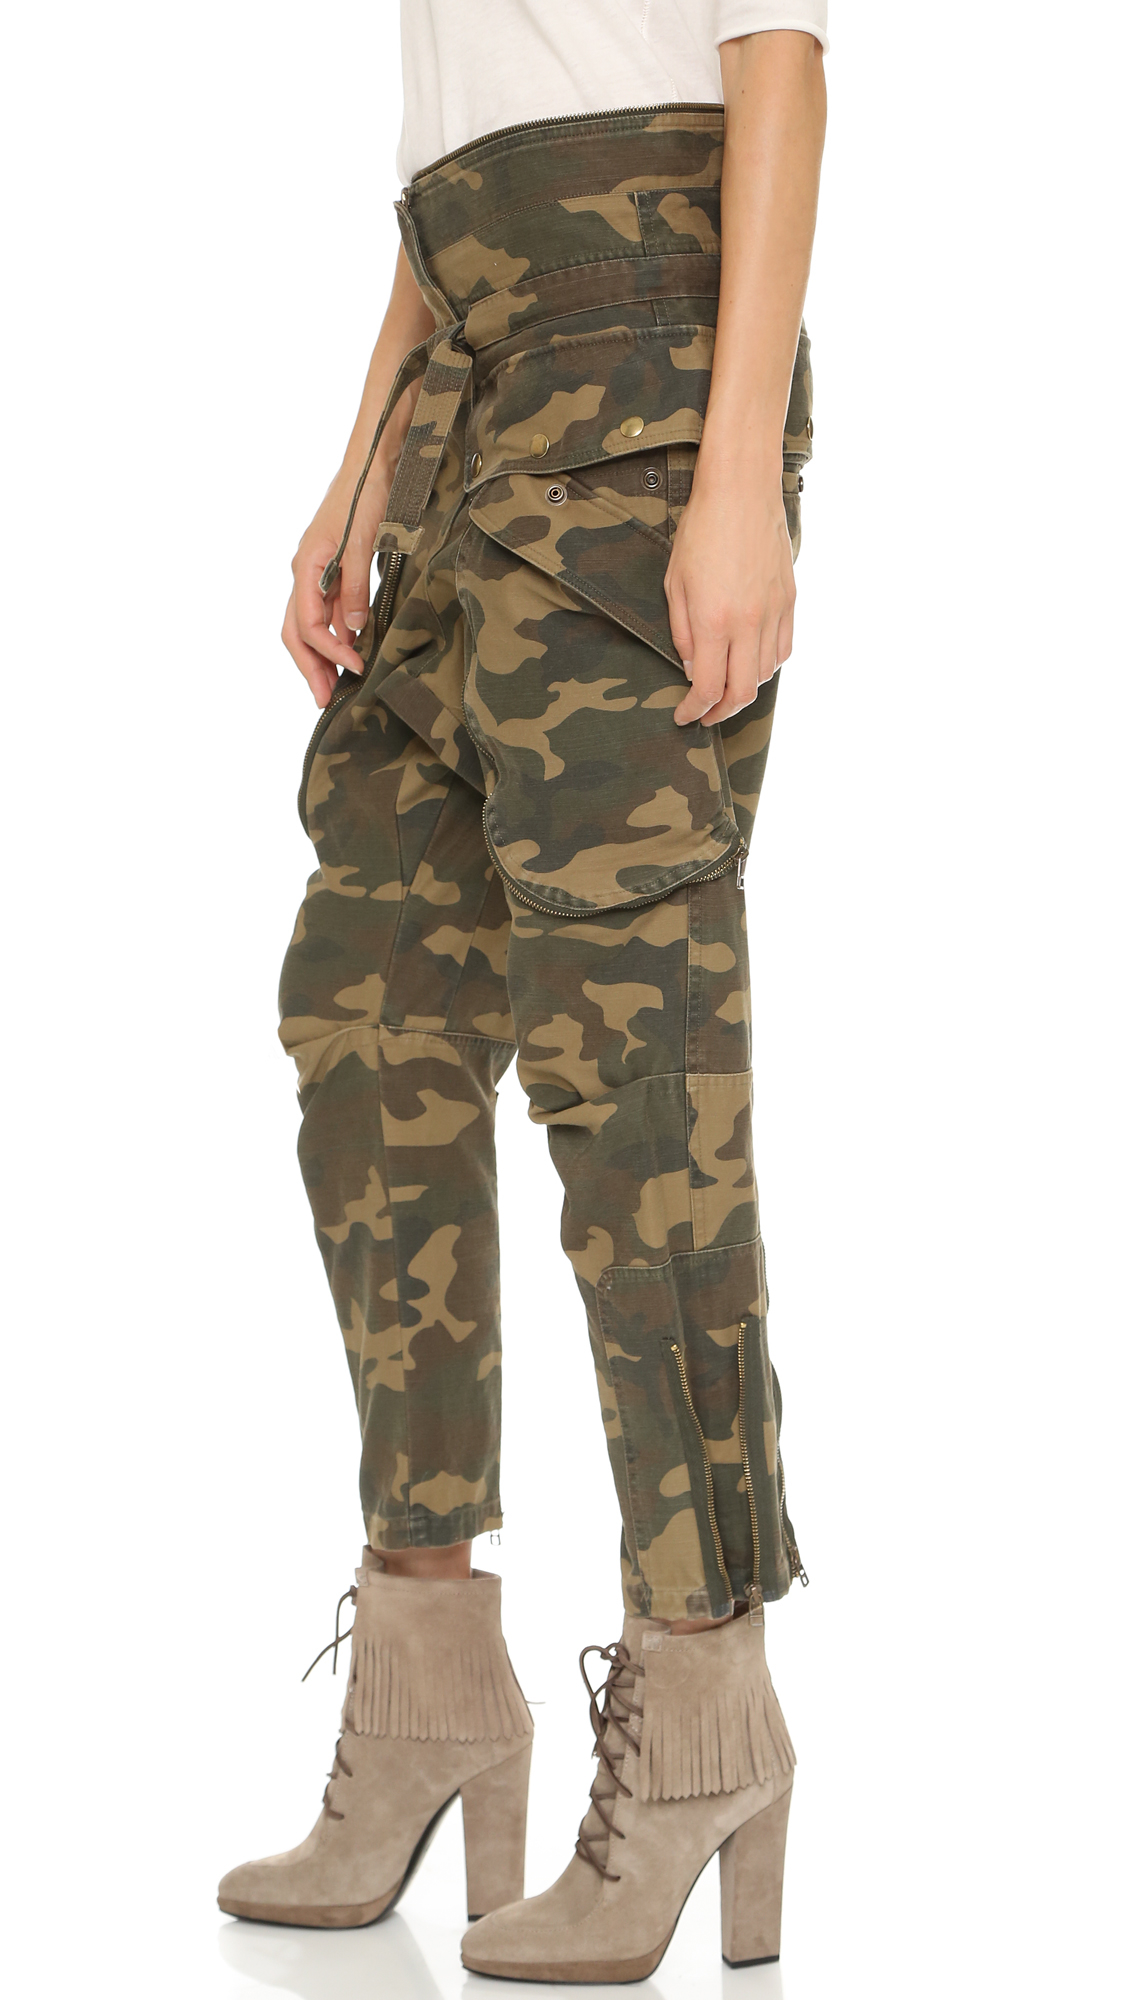 contrast waist camouflage trousers - Brown Faith Connexion Free Shipping High Quality Clearance For Cheap Shopping Online Cheap Price rQ37bh